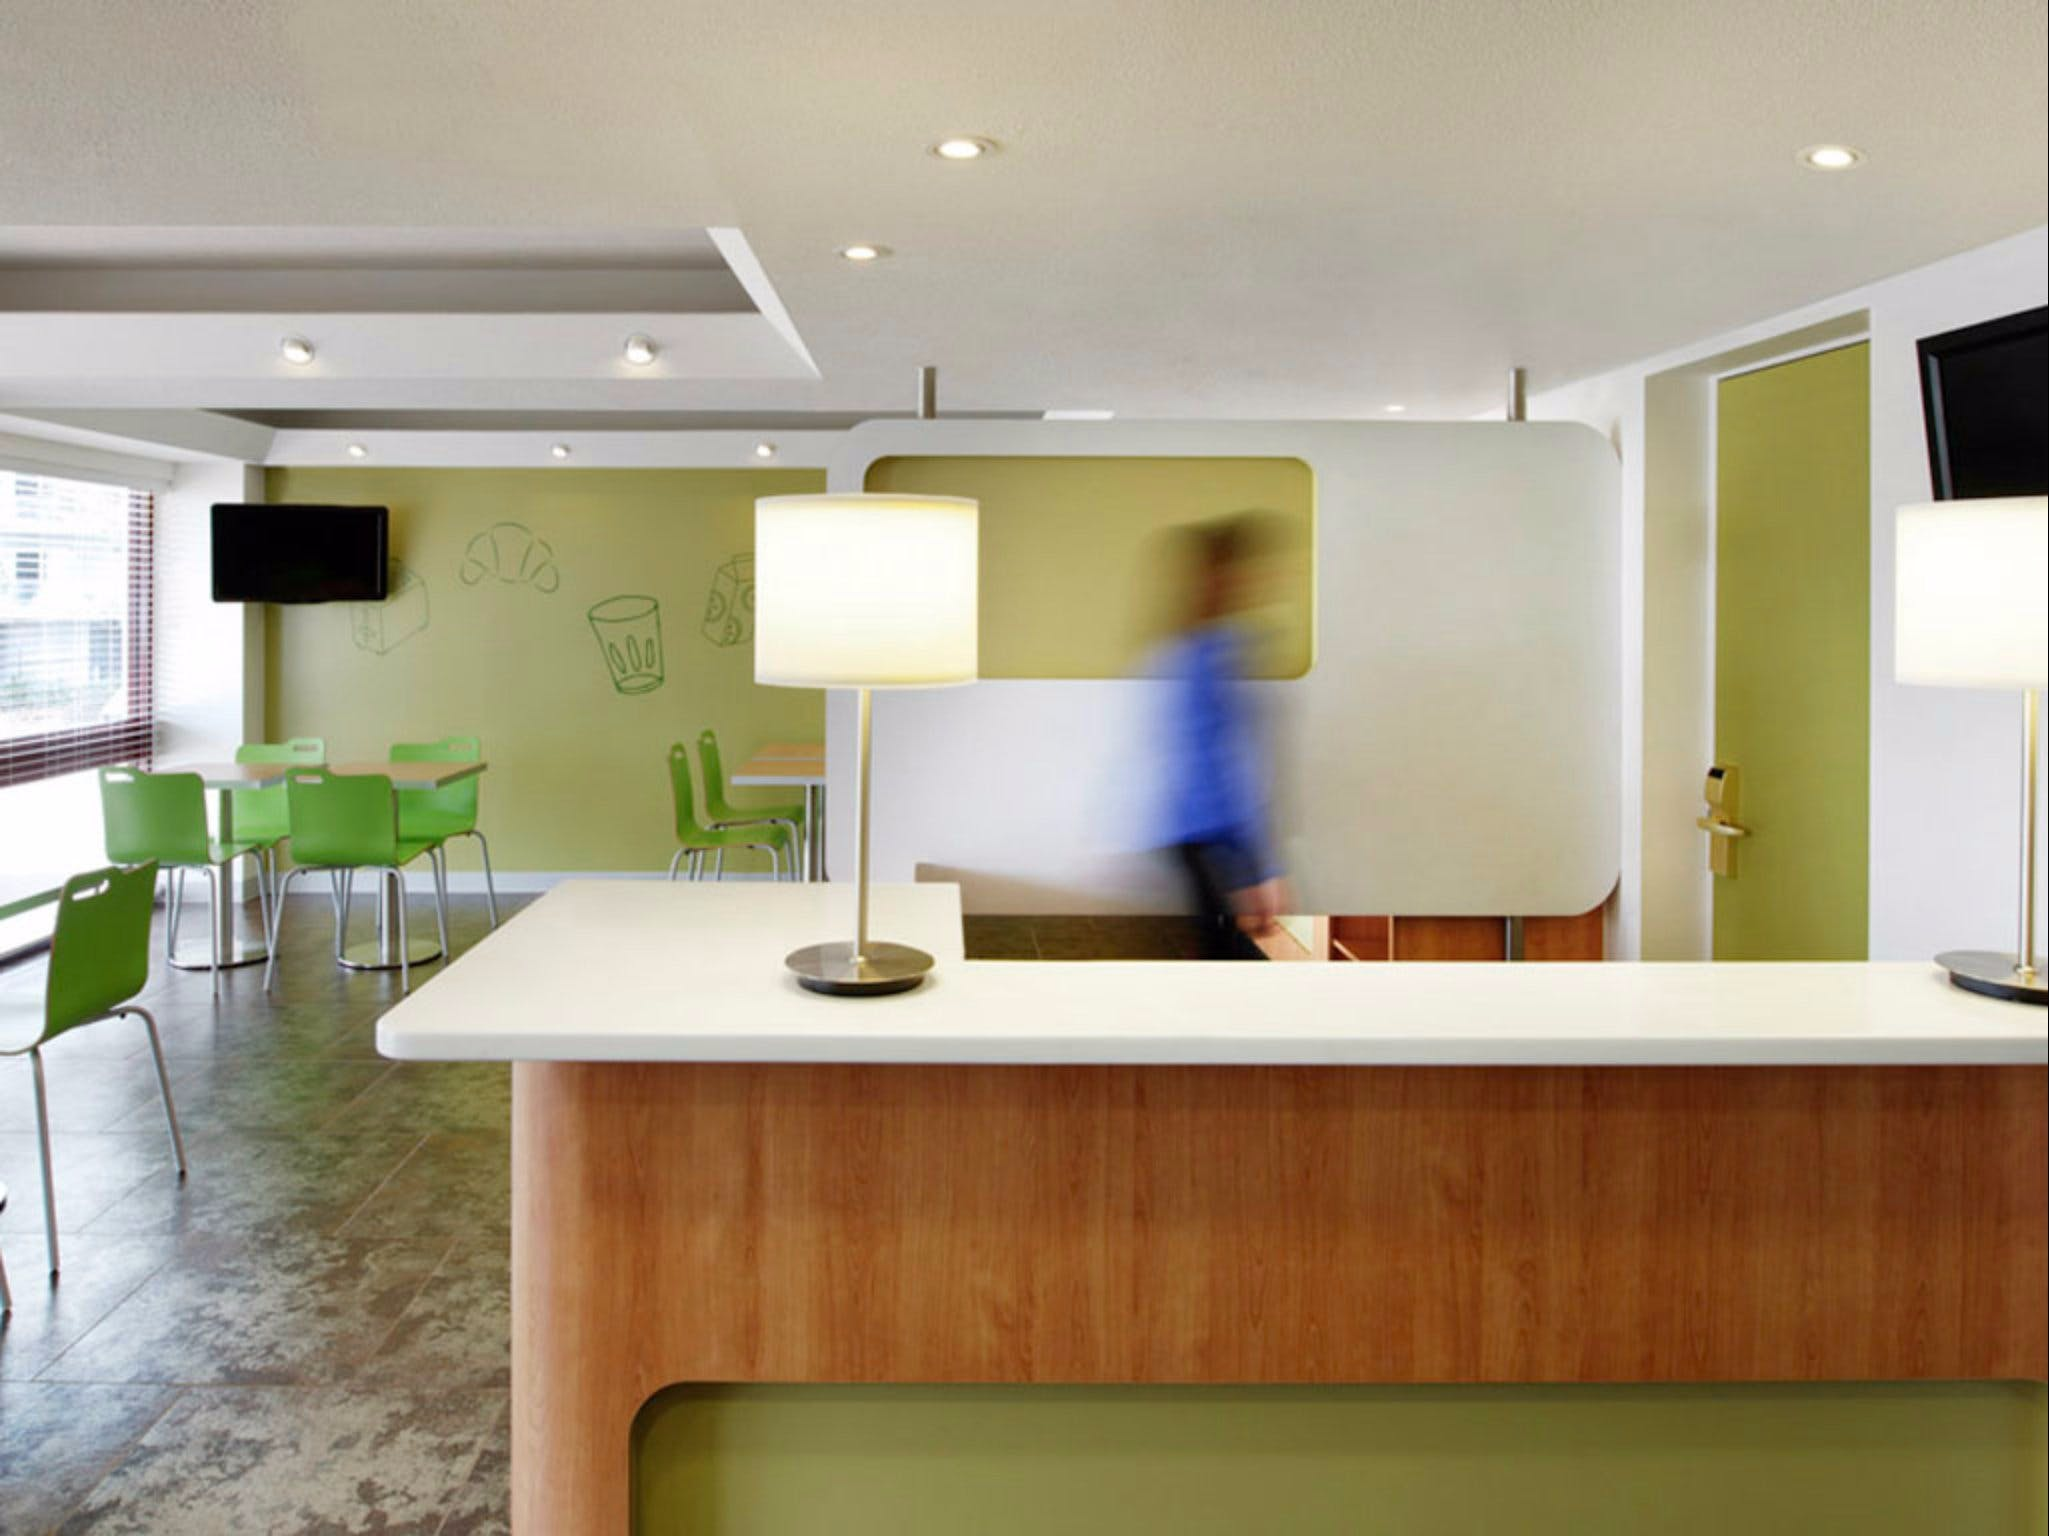 ibis budget Newcastle - Accommodation in Brisbane